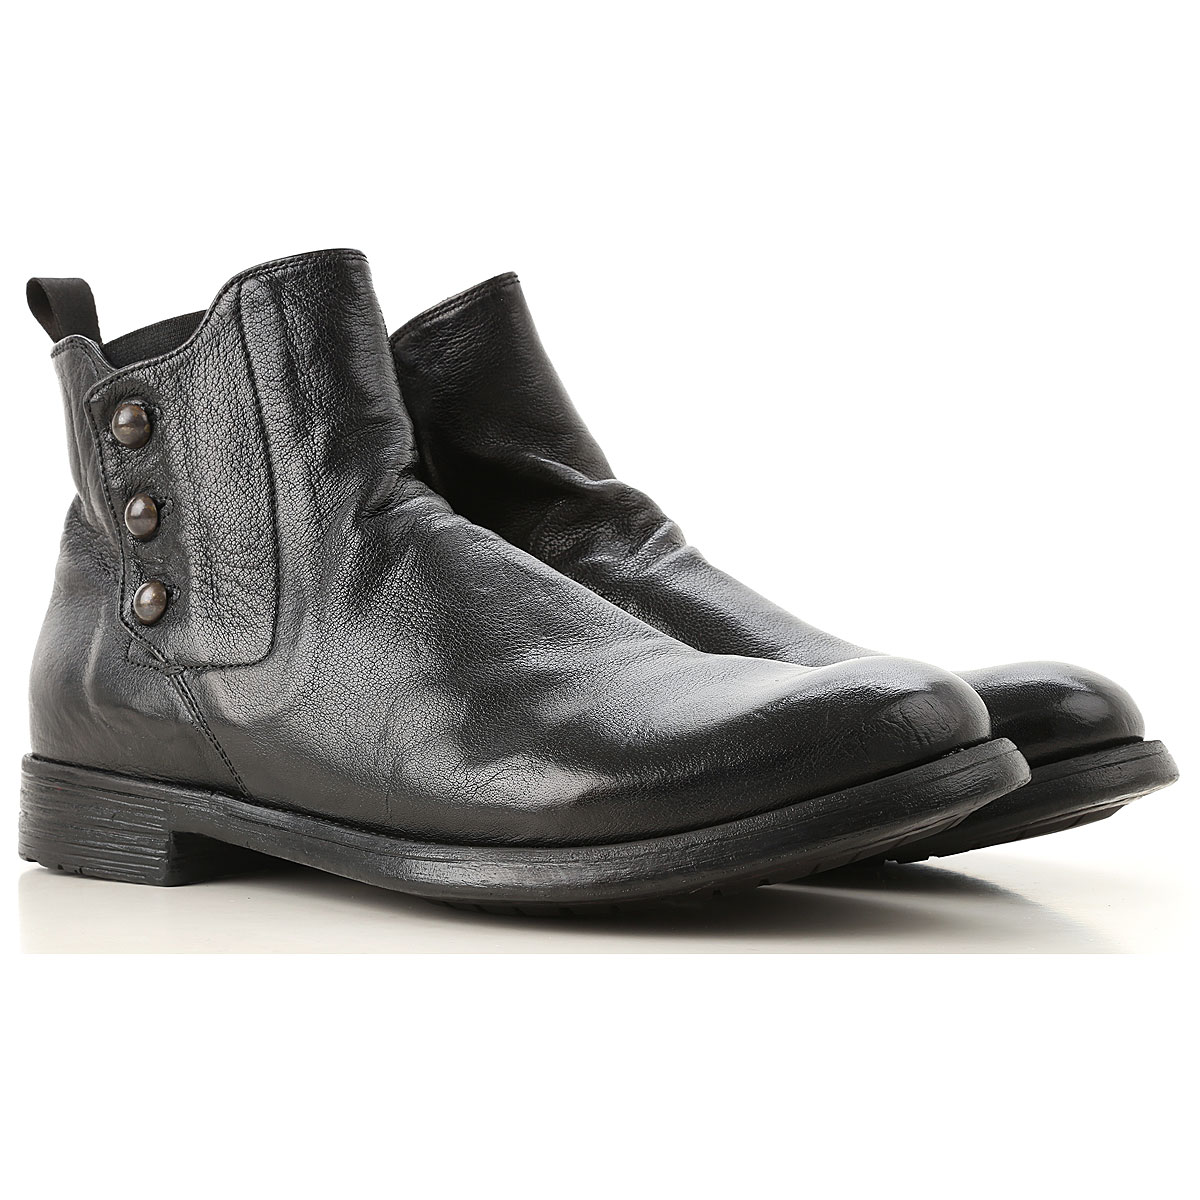 Image of Officine Creative Boots for Men, Booties, Brown, Leather, 2017, 10 10.5 7.5 8 9